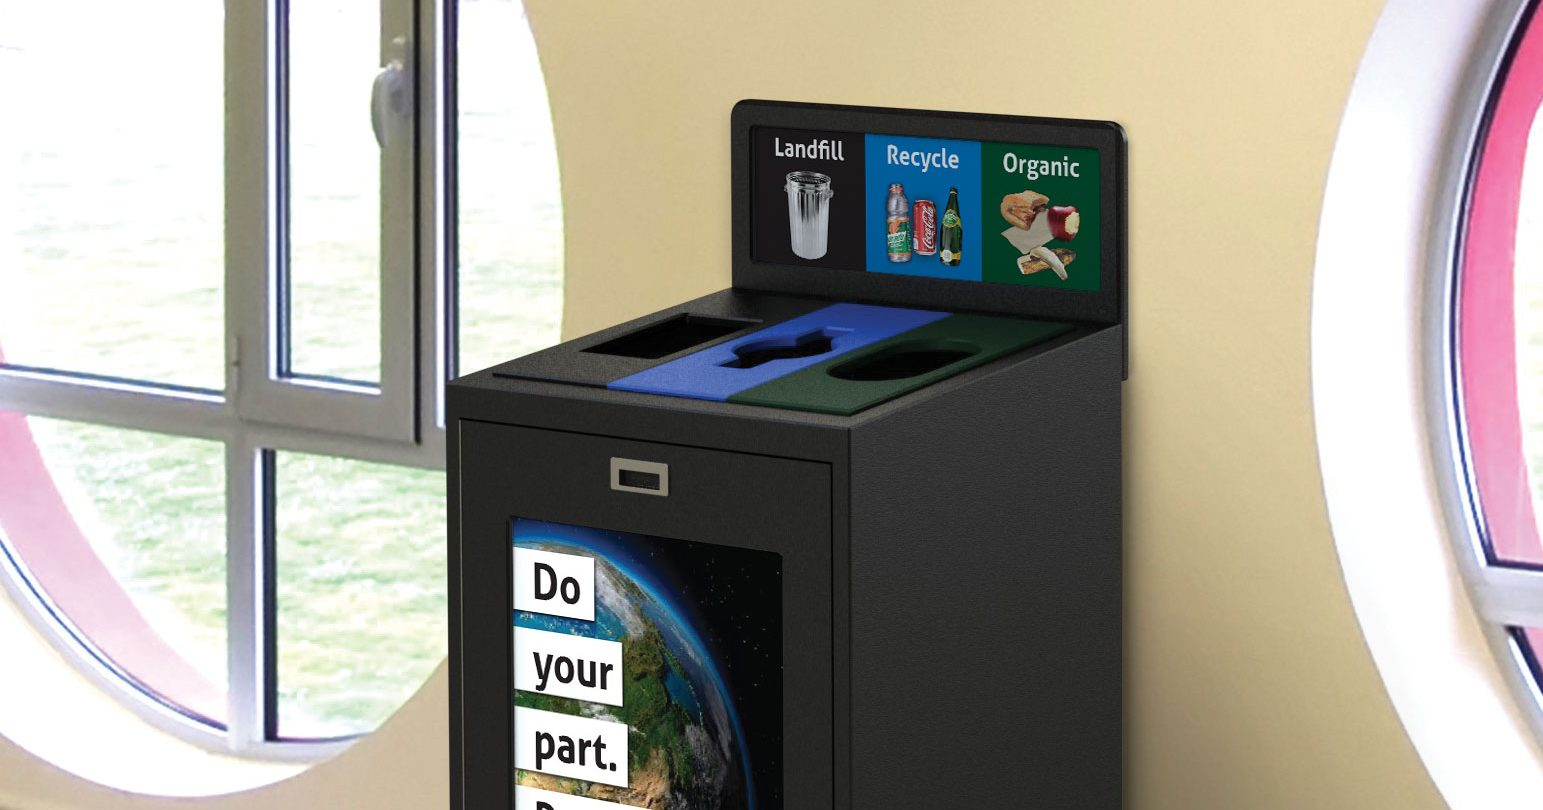 Best Office Recycling and waste Bin, Indoor recycling and waste container, New York City Recycling Mandates